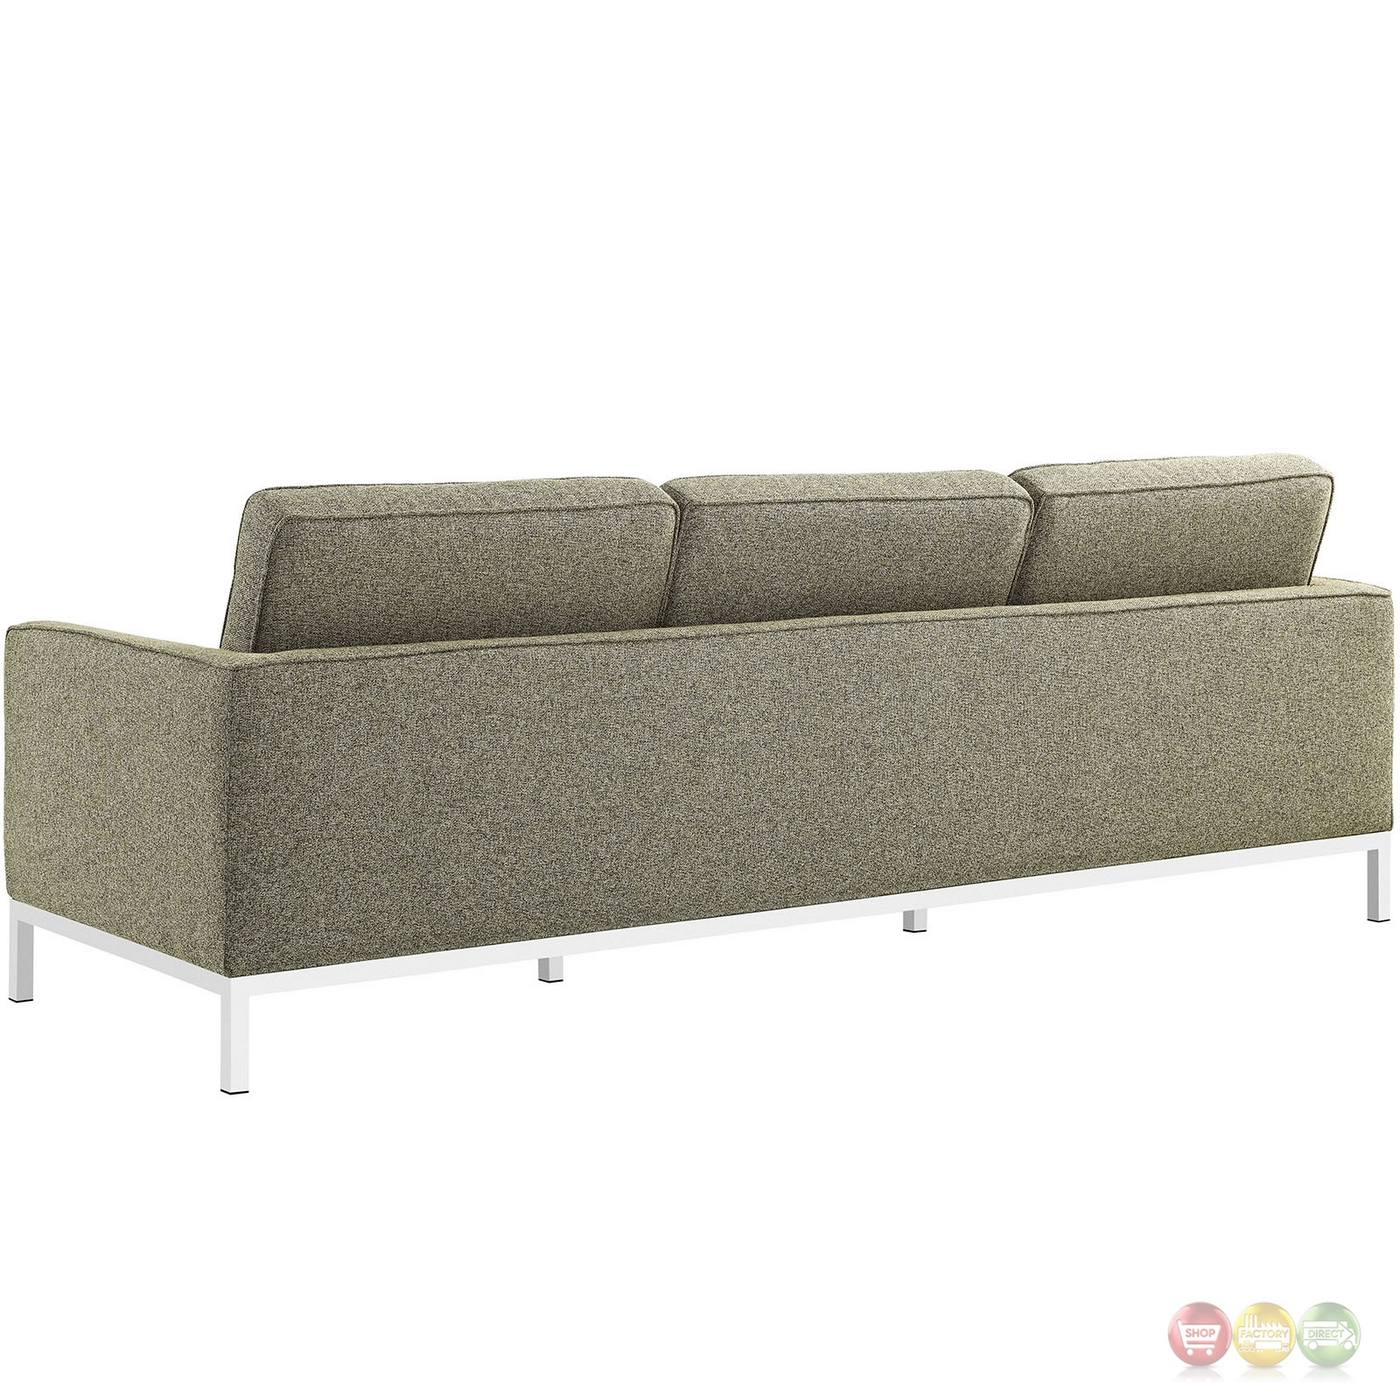 oatmeal sofa set pet for large dogs loft modern 2pc upholstered button tufted and armchair